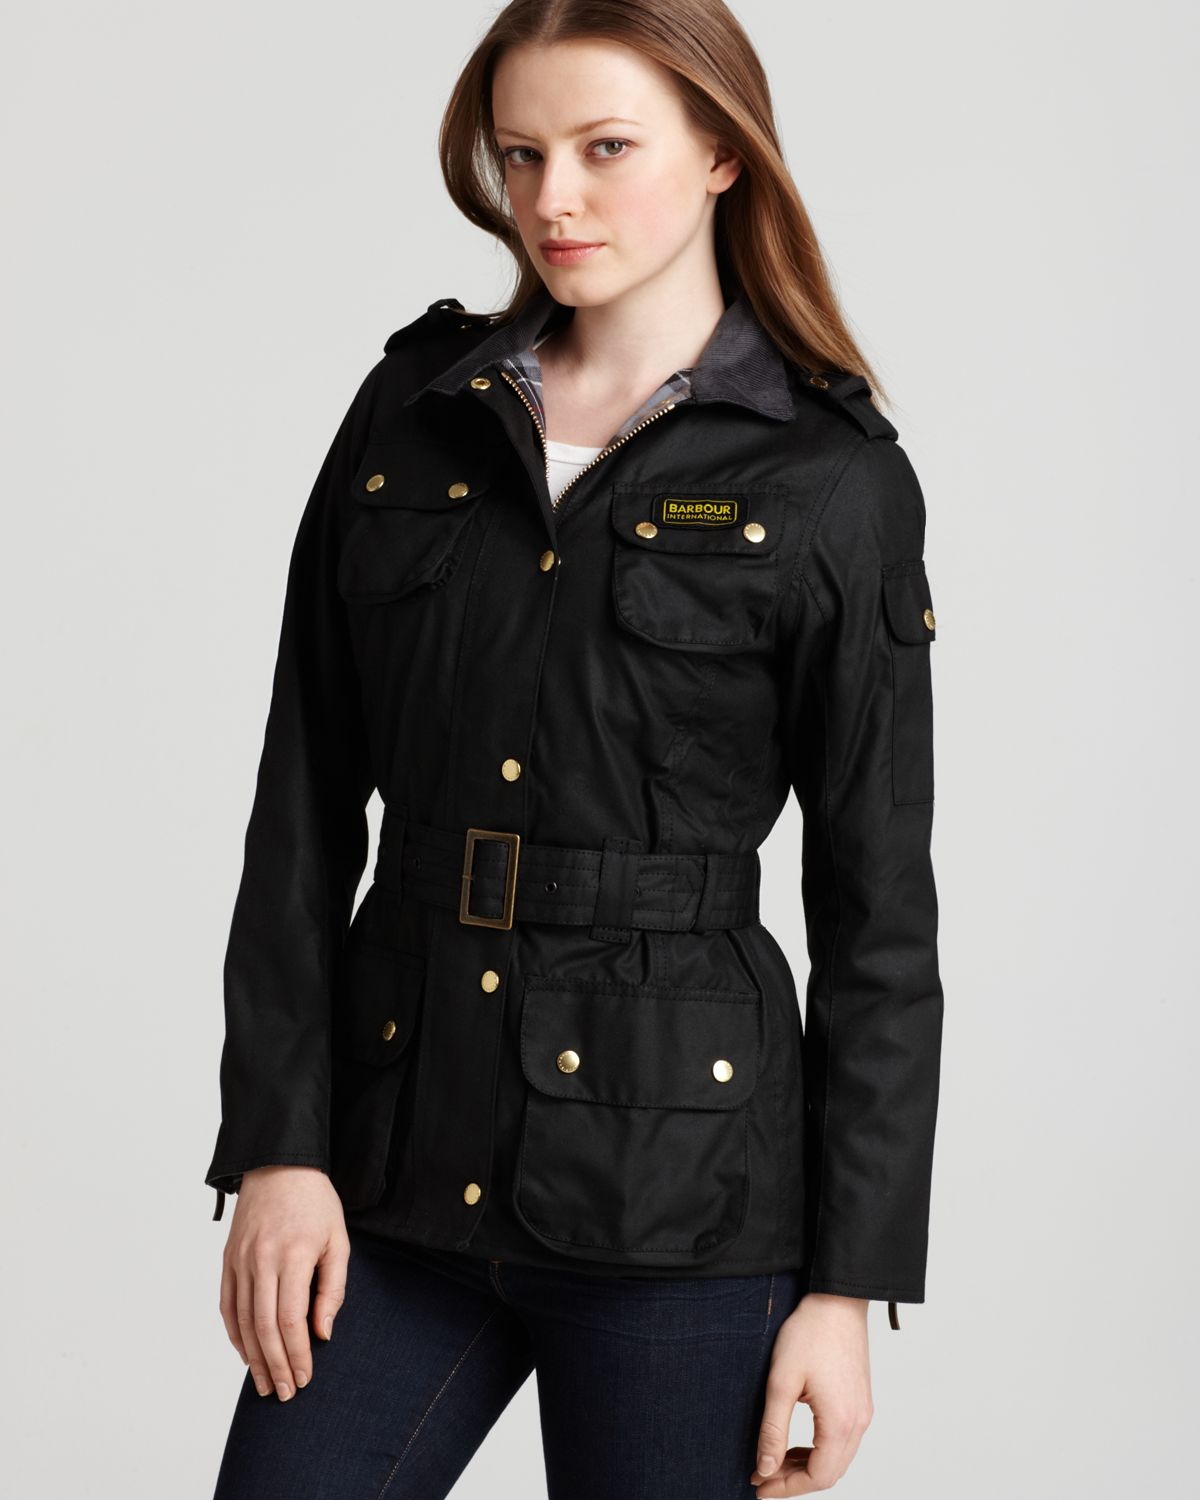 Barbour womens international waxed jacket